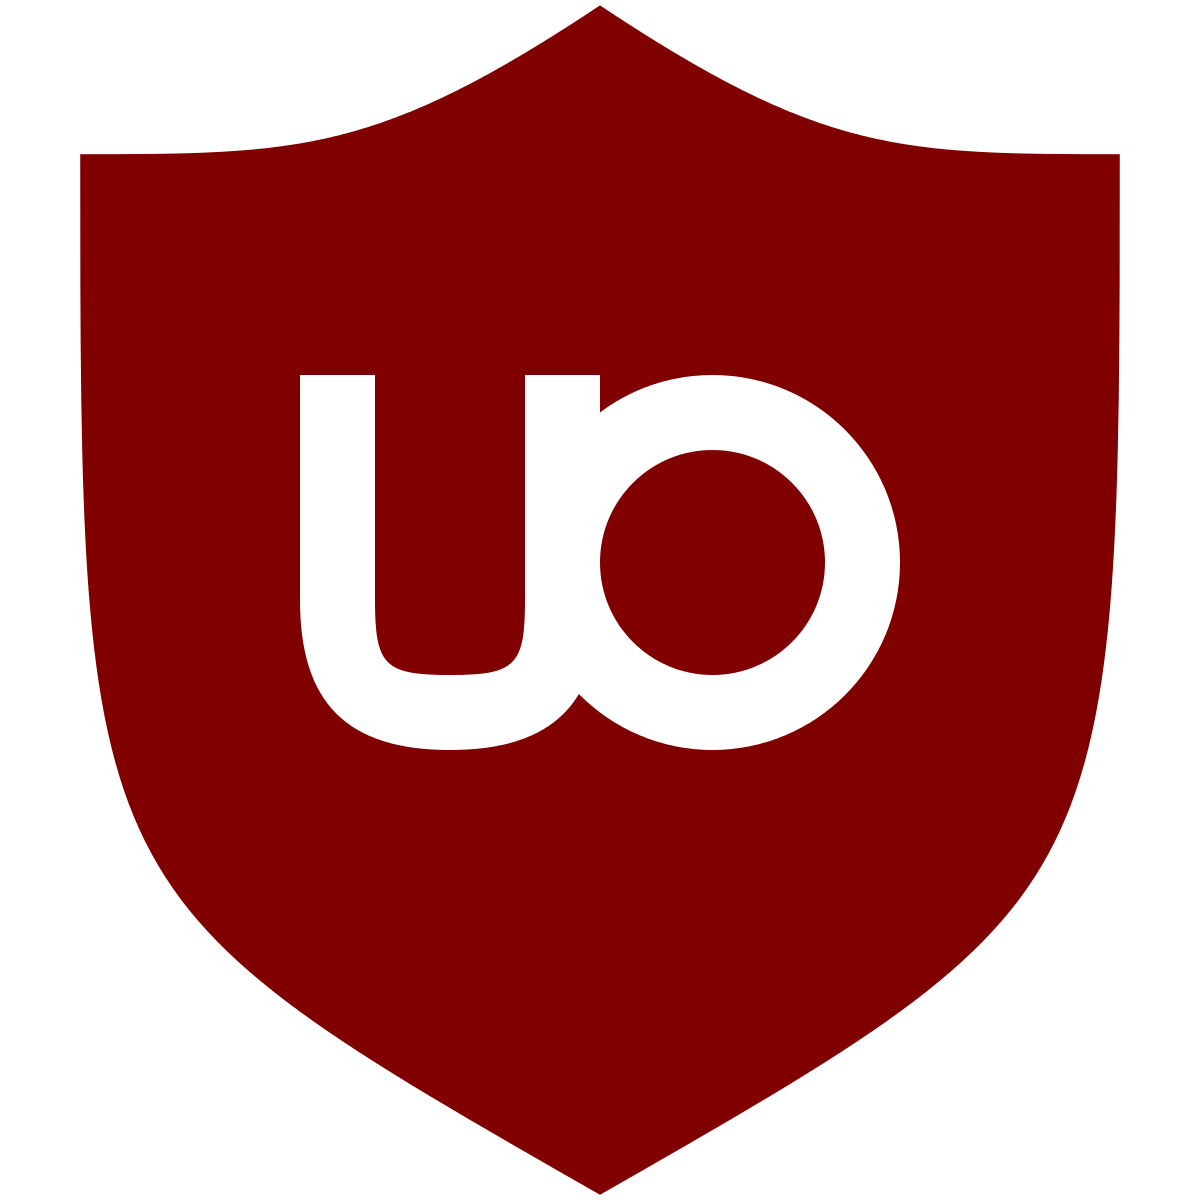 Logo de l'extension uBlock Origin